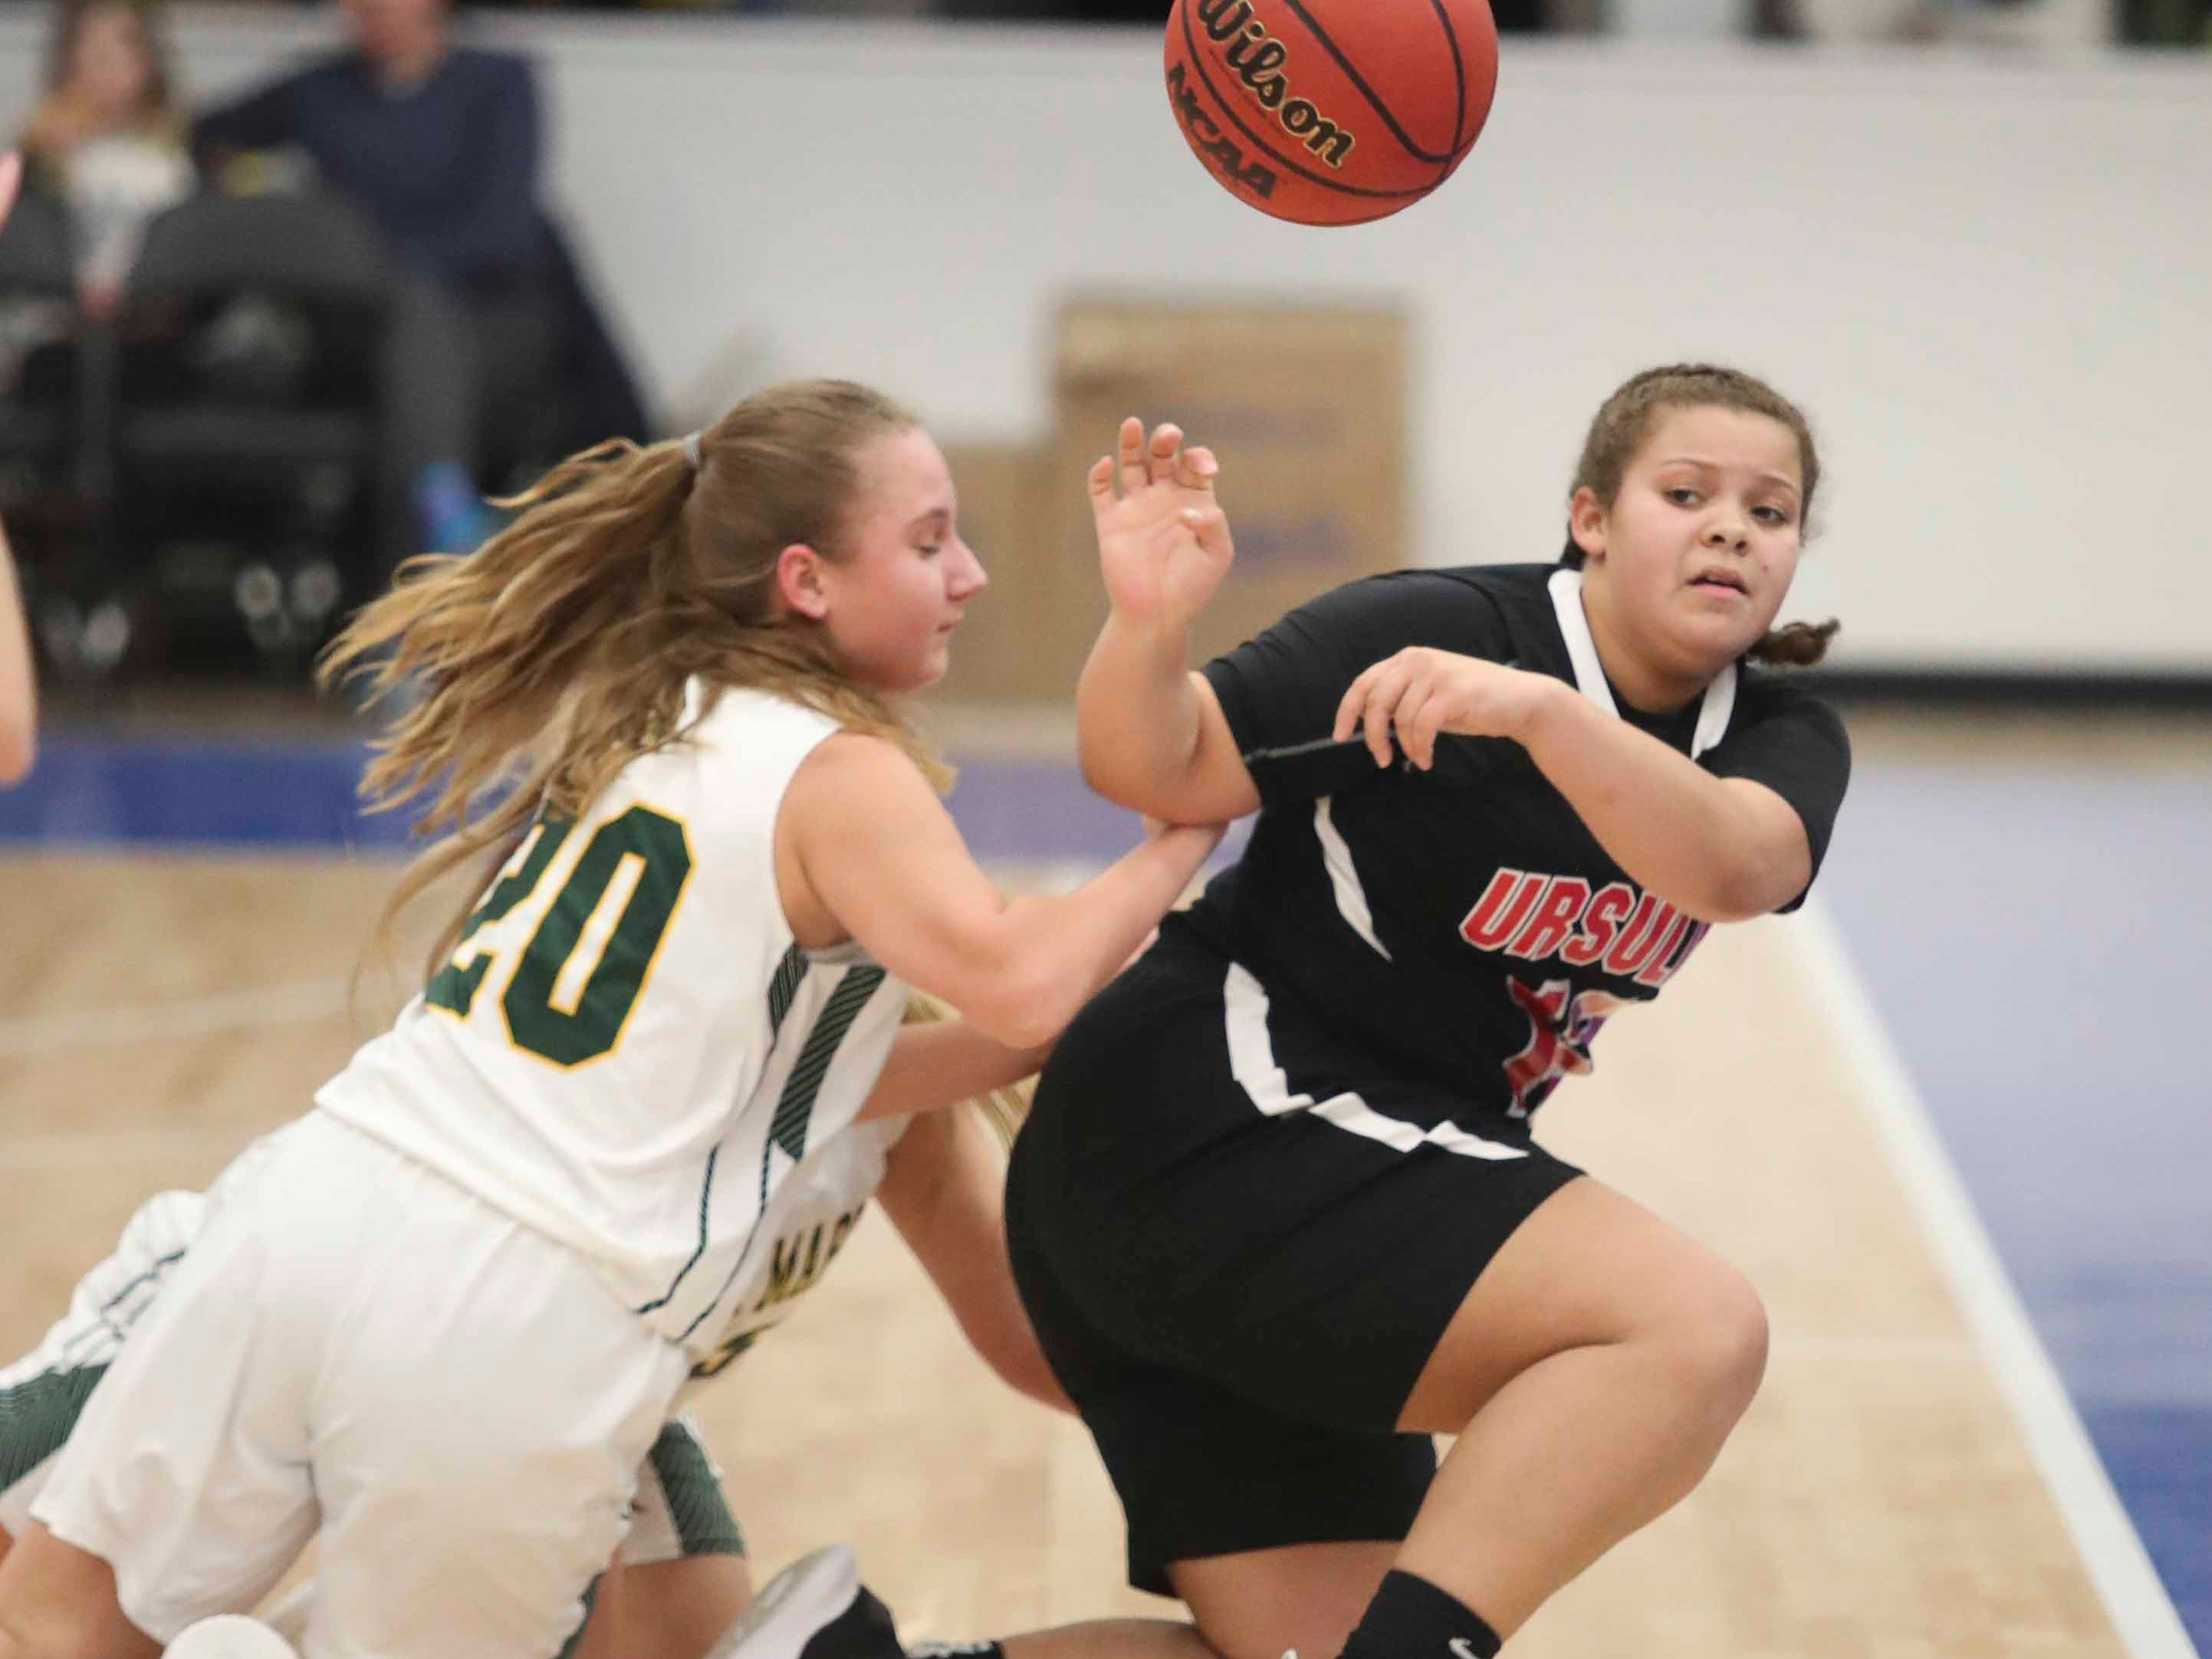 St. Mark's Madelyn Lenick (left) converges with a teammate on Ursuline's Taelynn Brooks in the SL24 Memorial Basketball Classic at the 76ers Fieldhouse in Wilmington Friday.